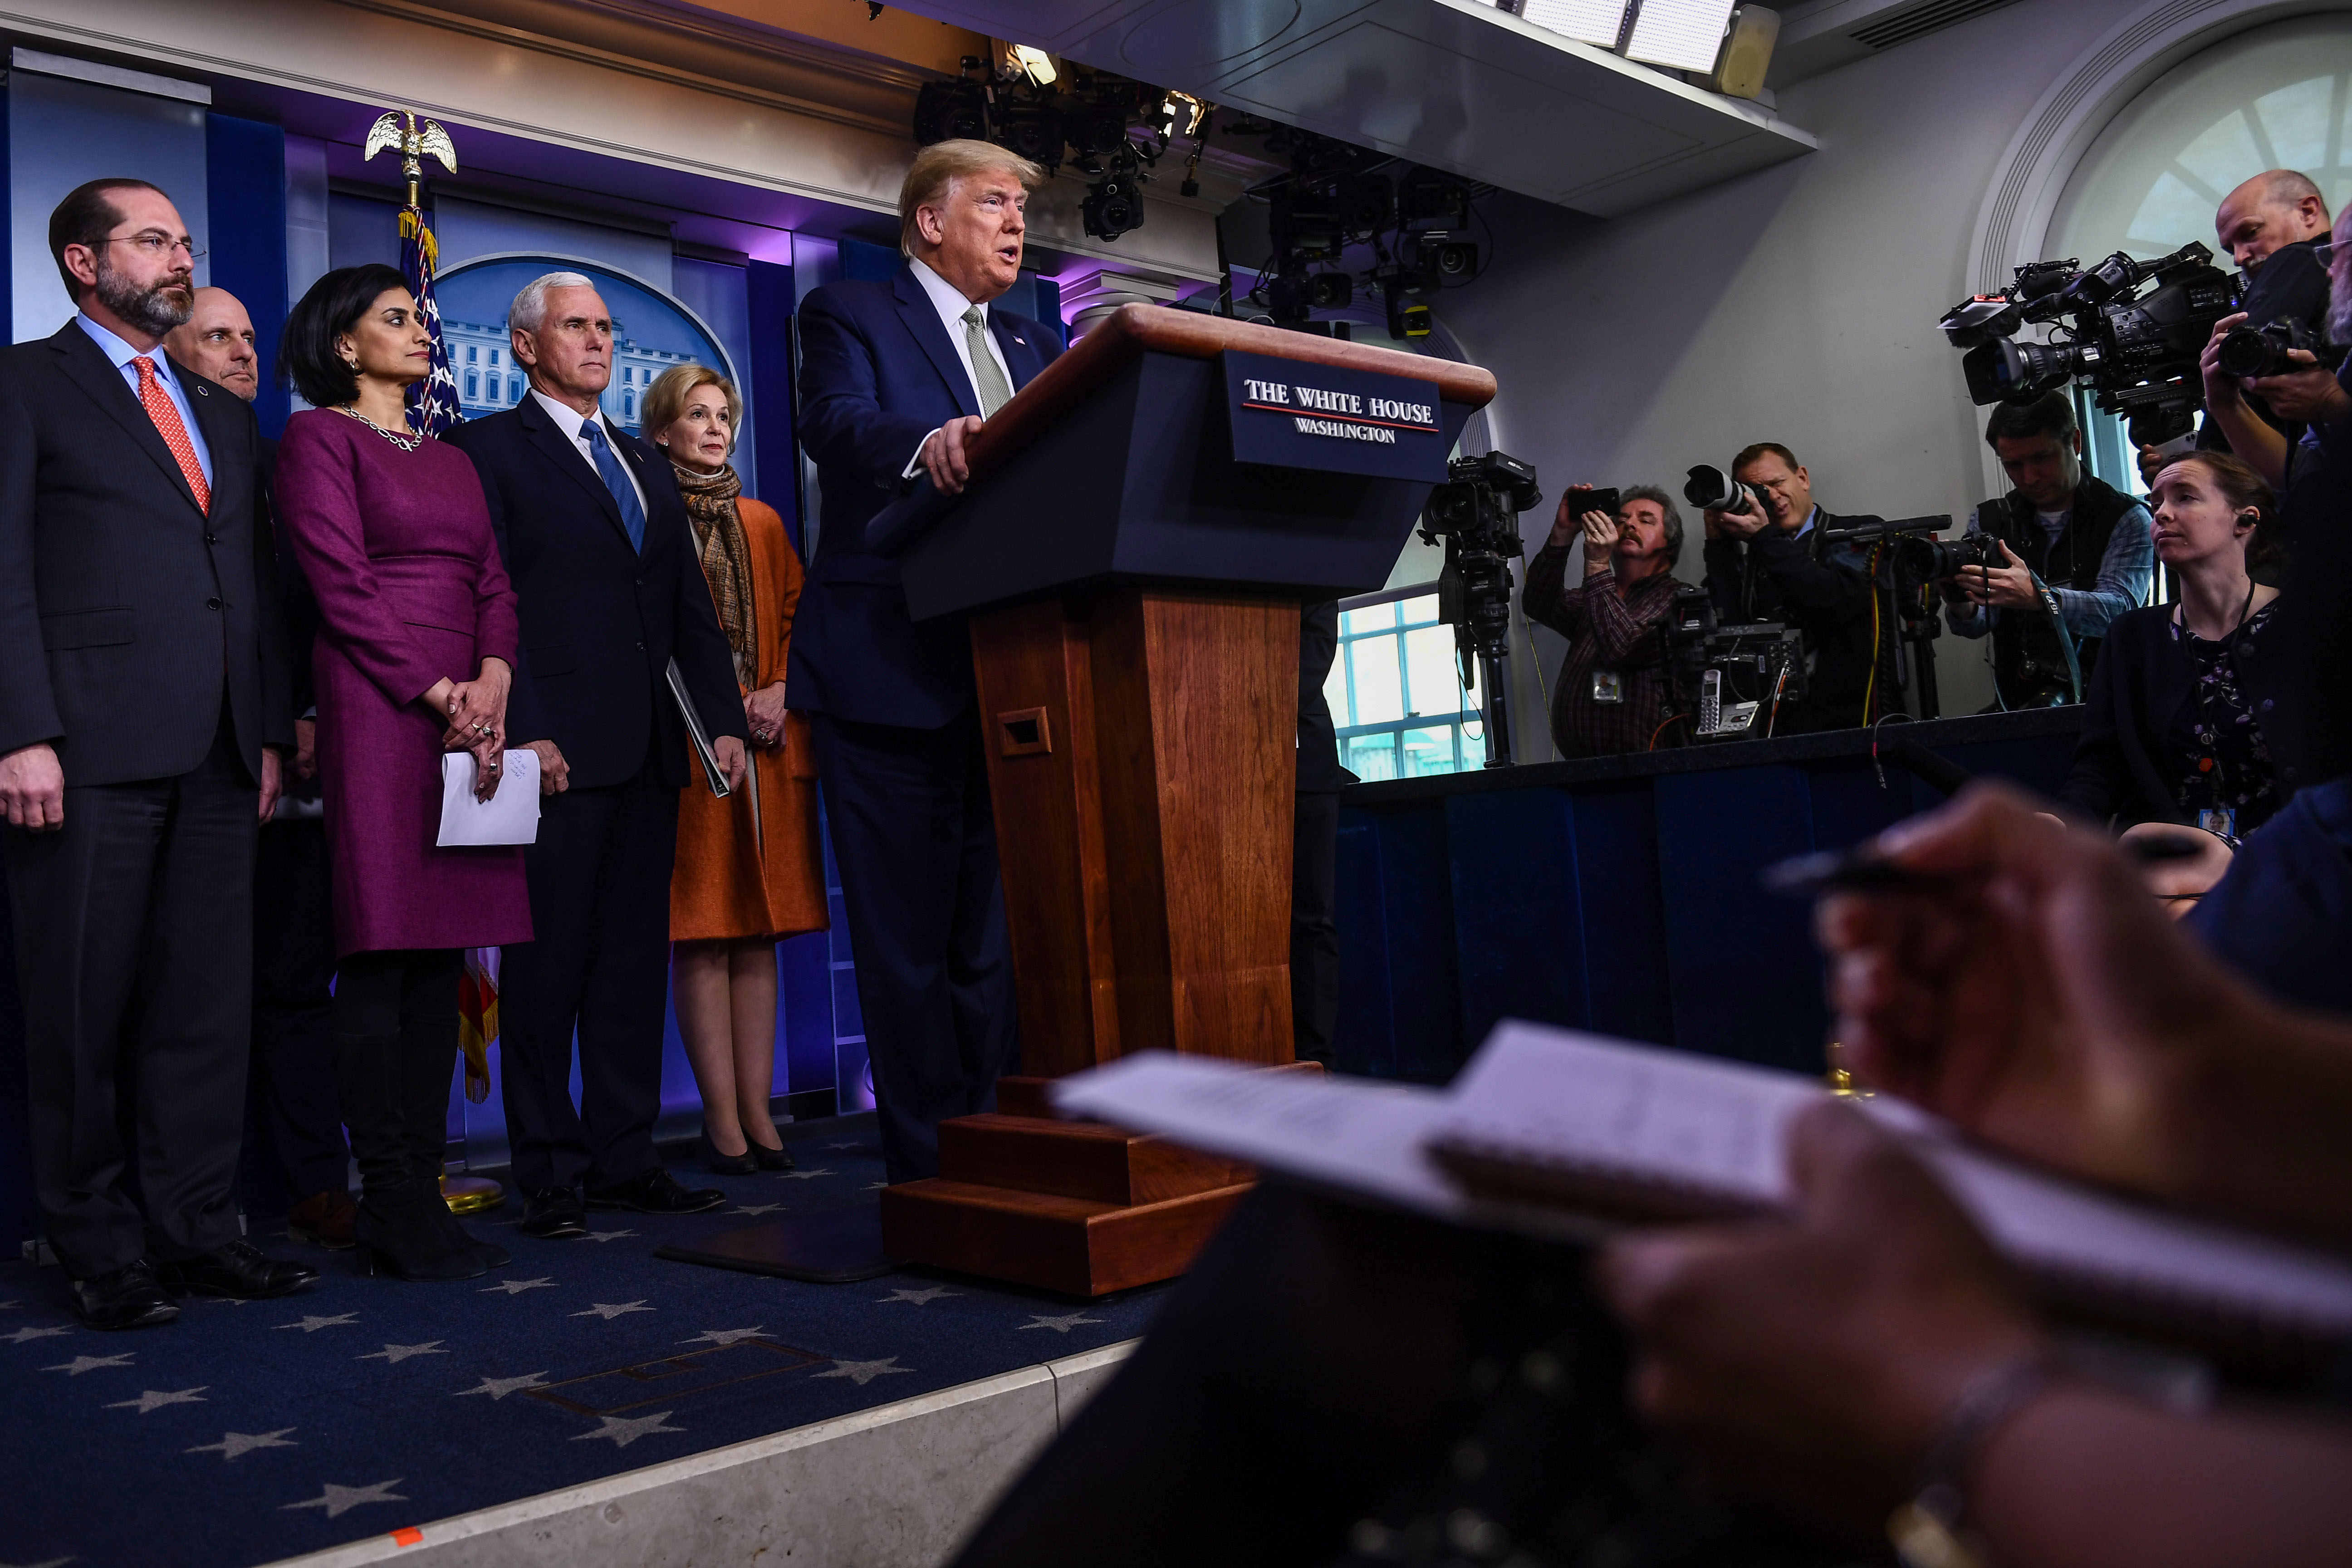 US President Donald Trump opens the daily press briefing on the Coronavirus pandemic situation at the White House on March 17, 2020 in Washington. (Photo by BRENDAN SMIALOWSKI/AFP via Getty Images)